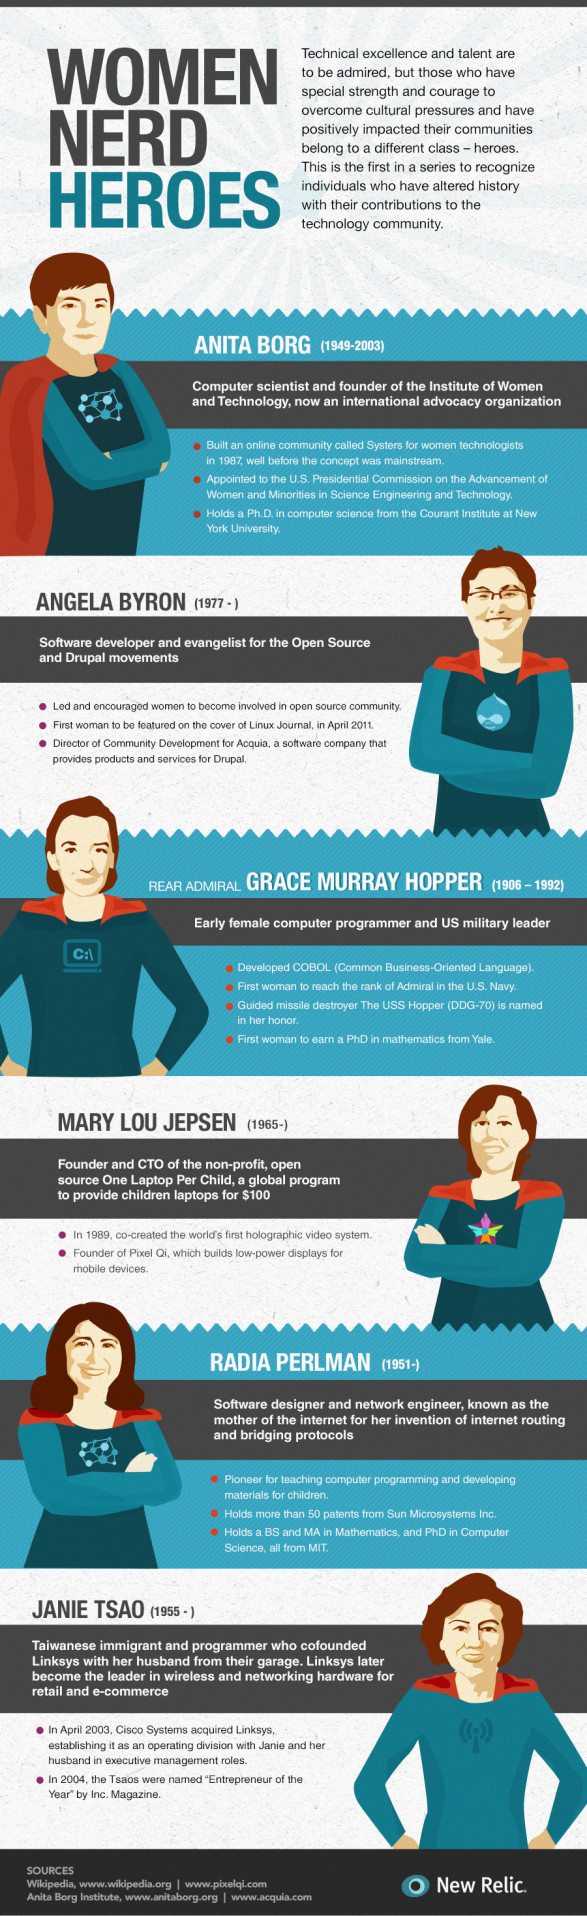 women nerd heroes 50f42a87751b9 w587 Hacker Heroes: 6 Women Who Have Changed Technology